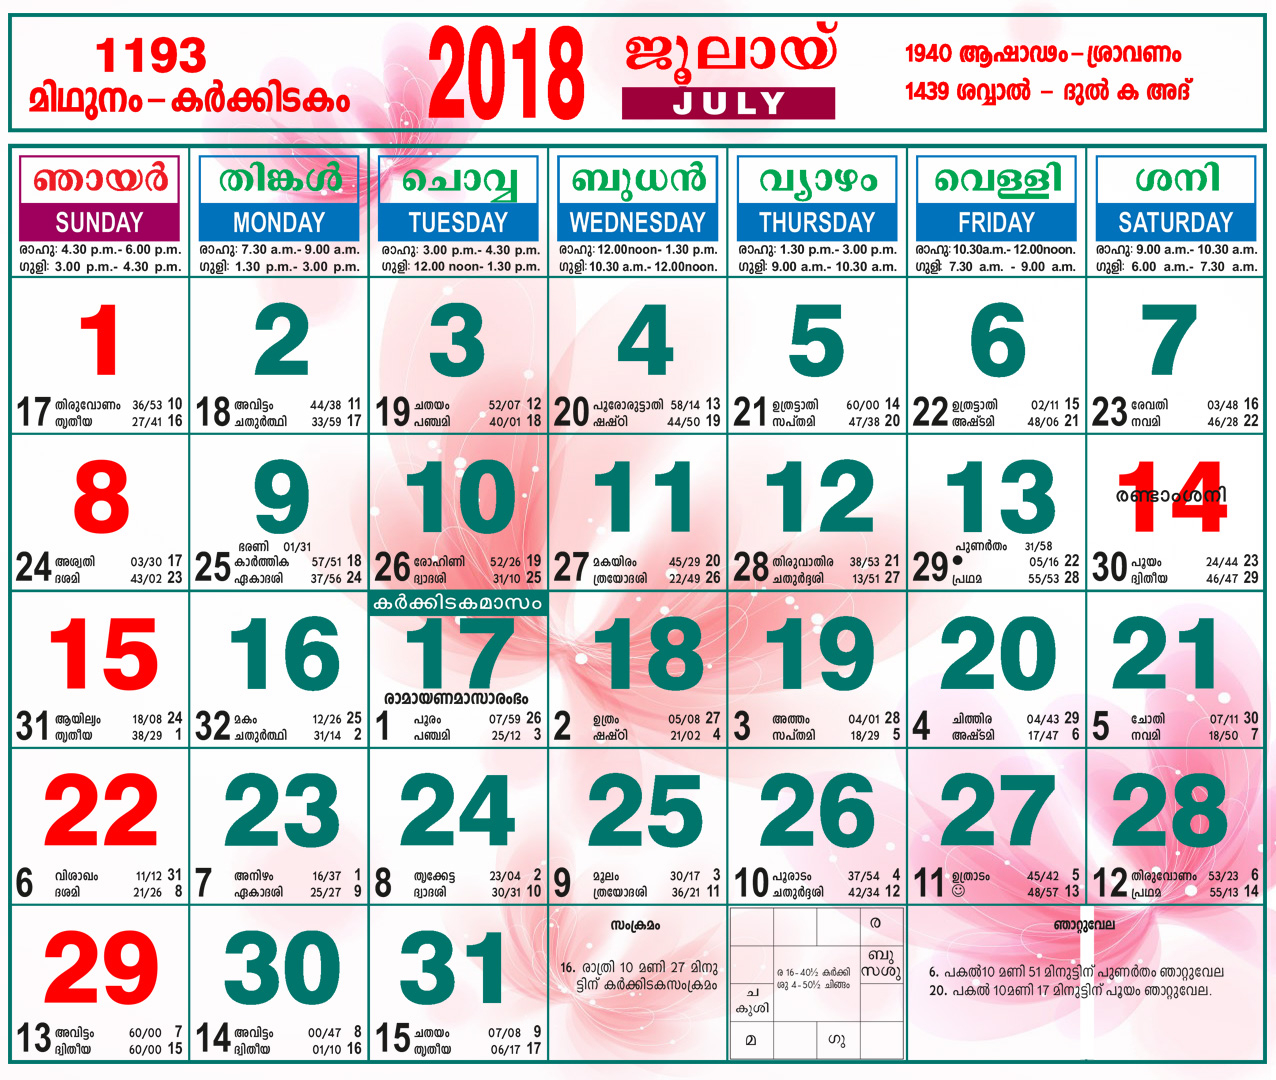 Malayalam Calendar July 2018 | | Calendarcraft with October 2018 Calendar Malayalam